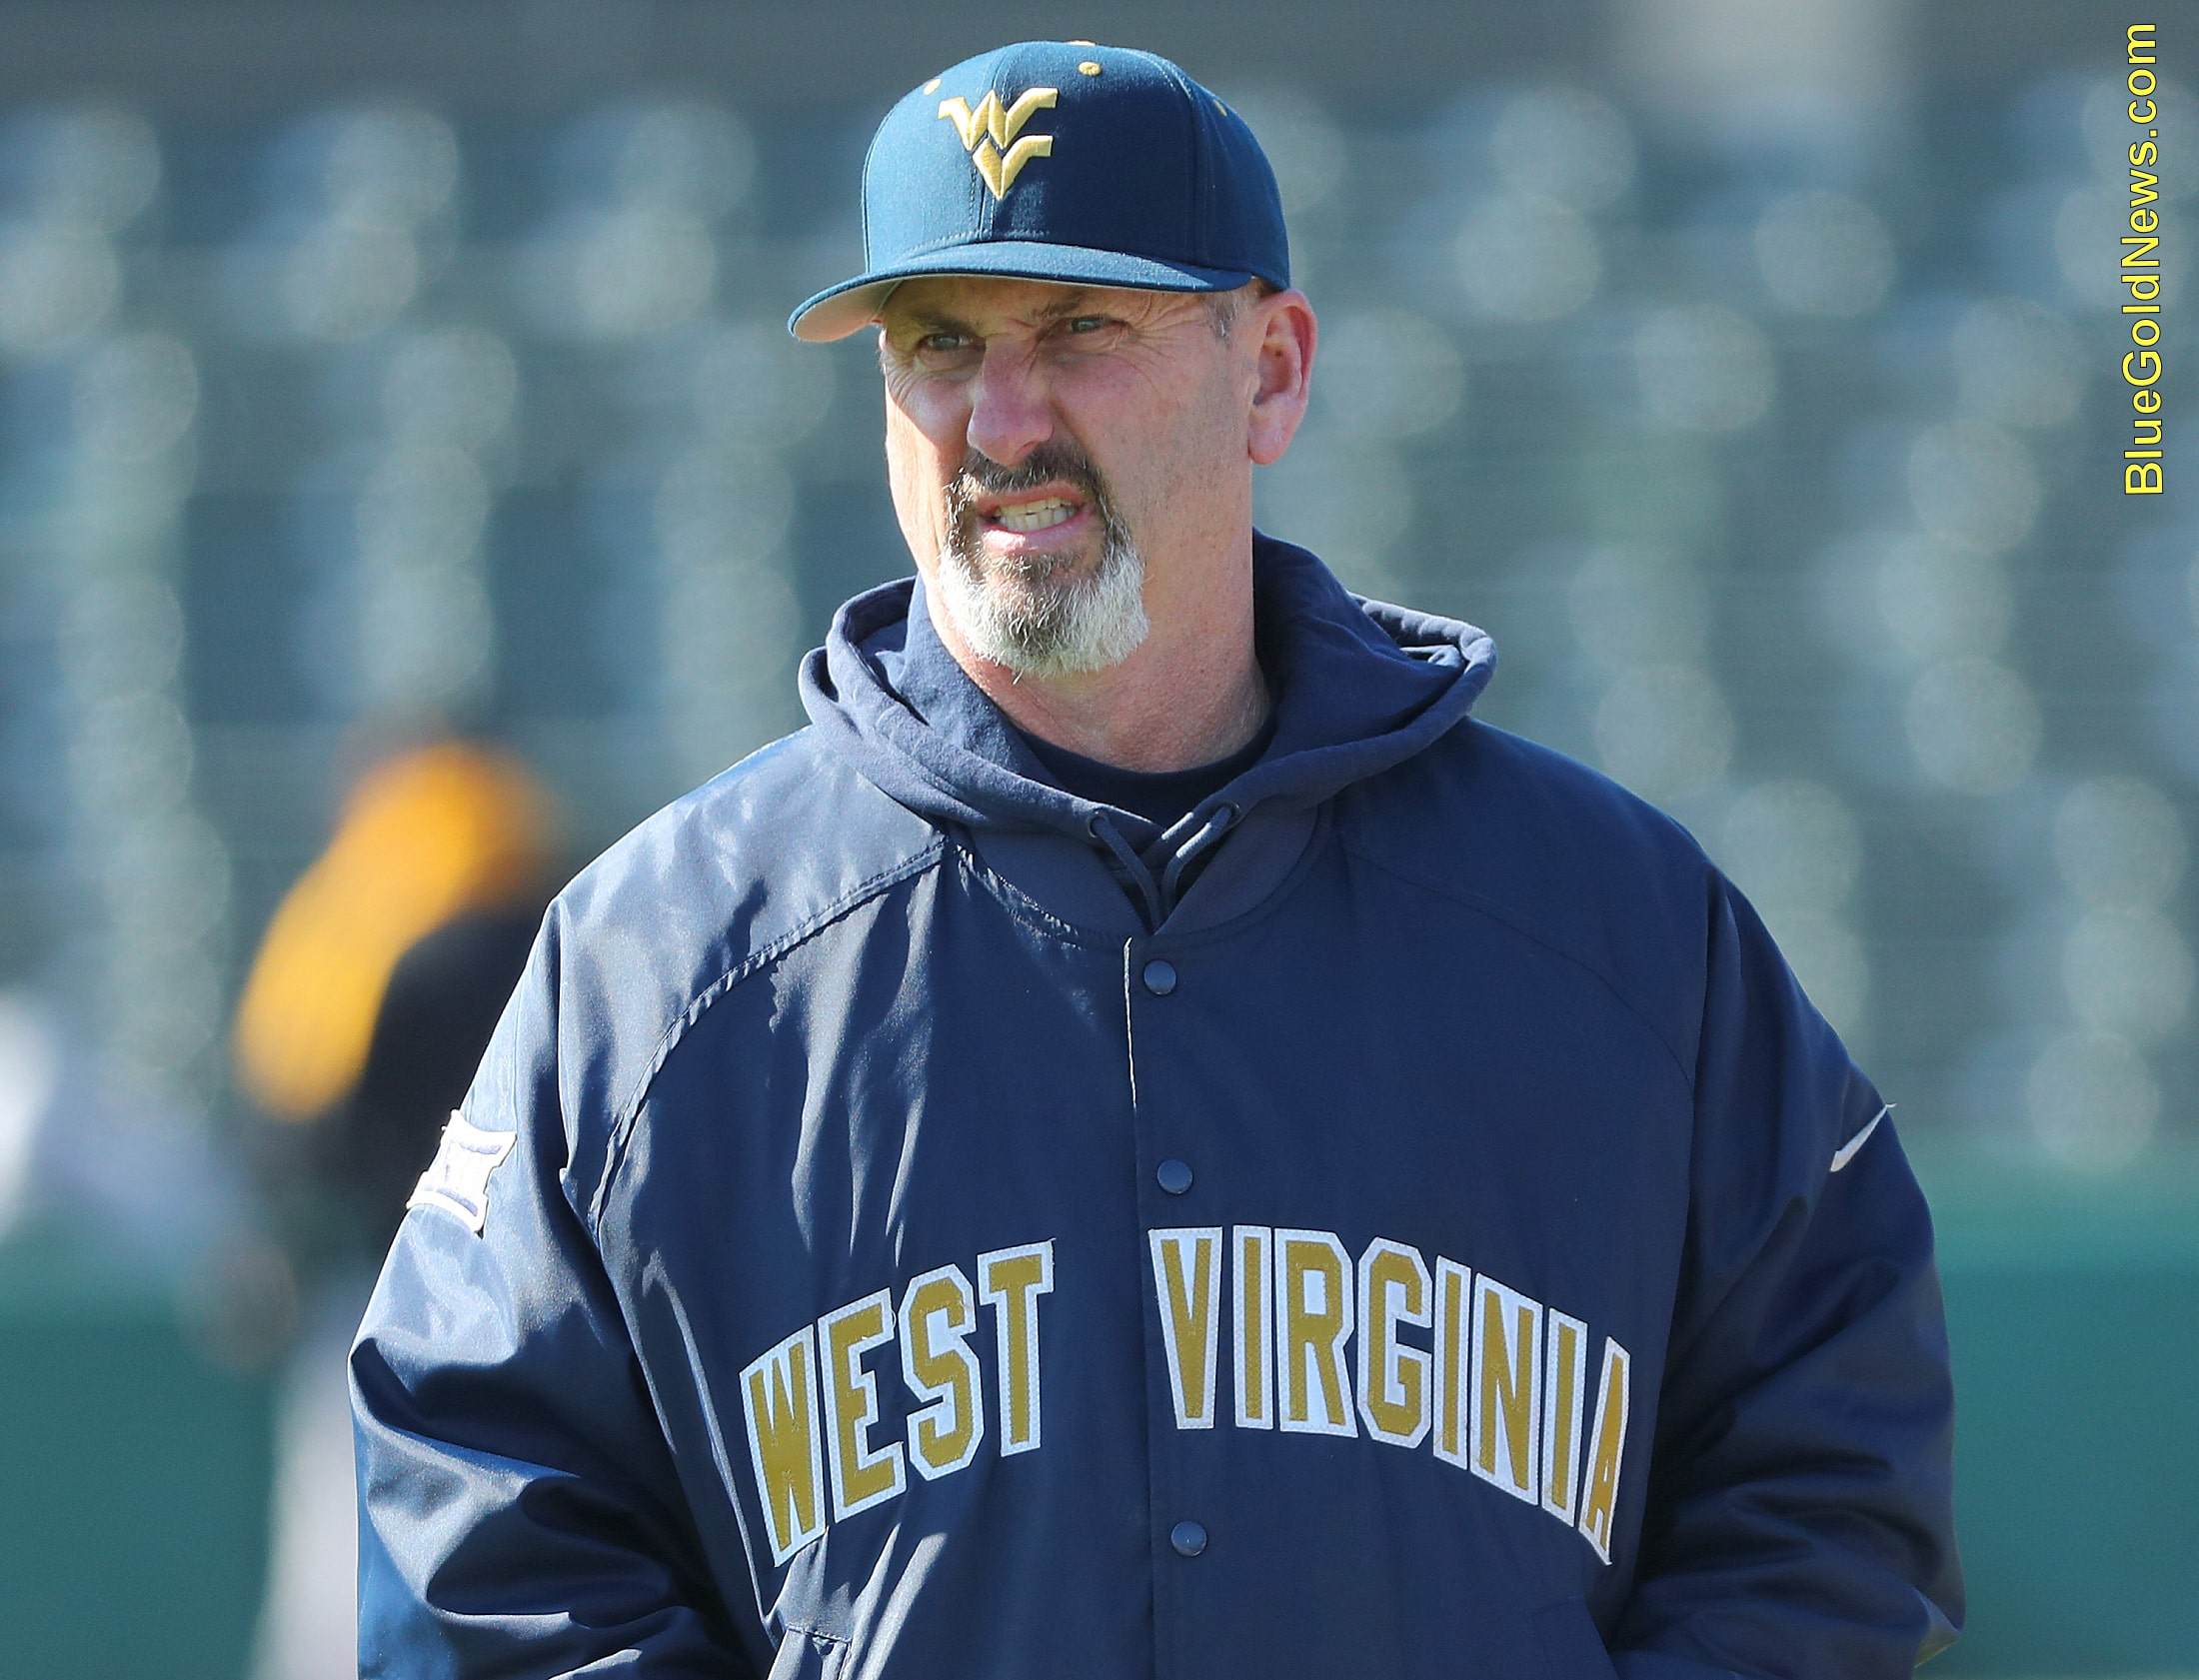 West Virginia coach Randy Mazey shows some grit in the blustery wind